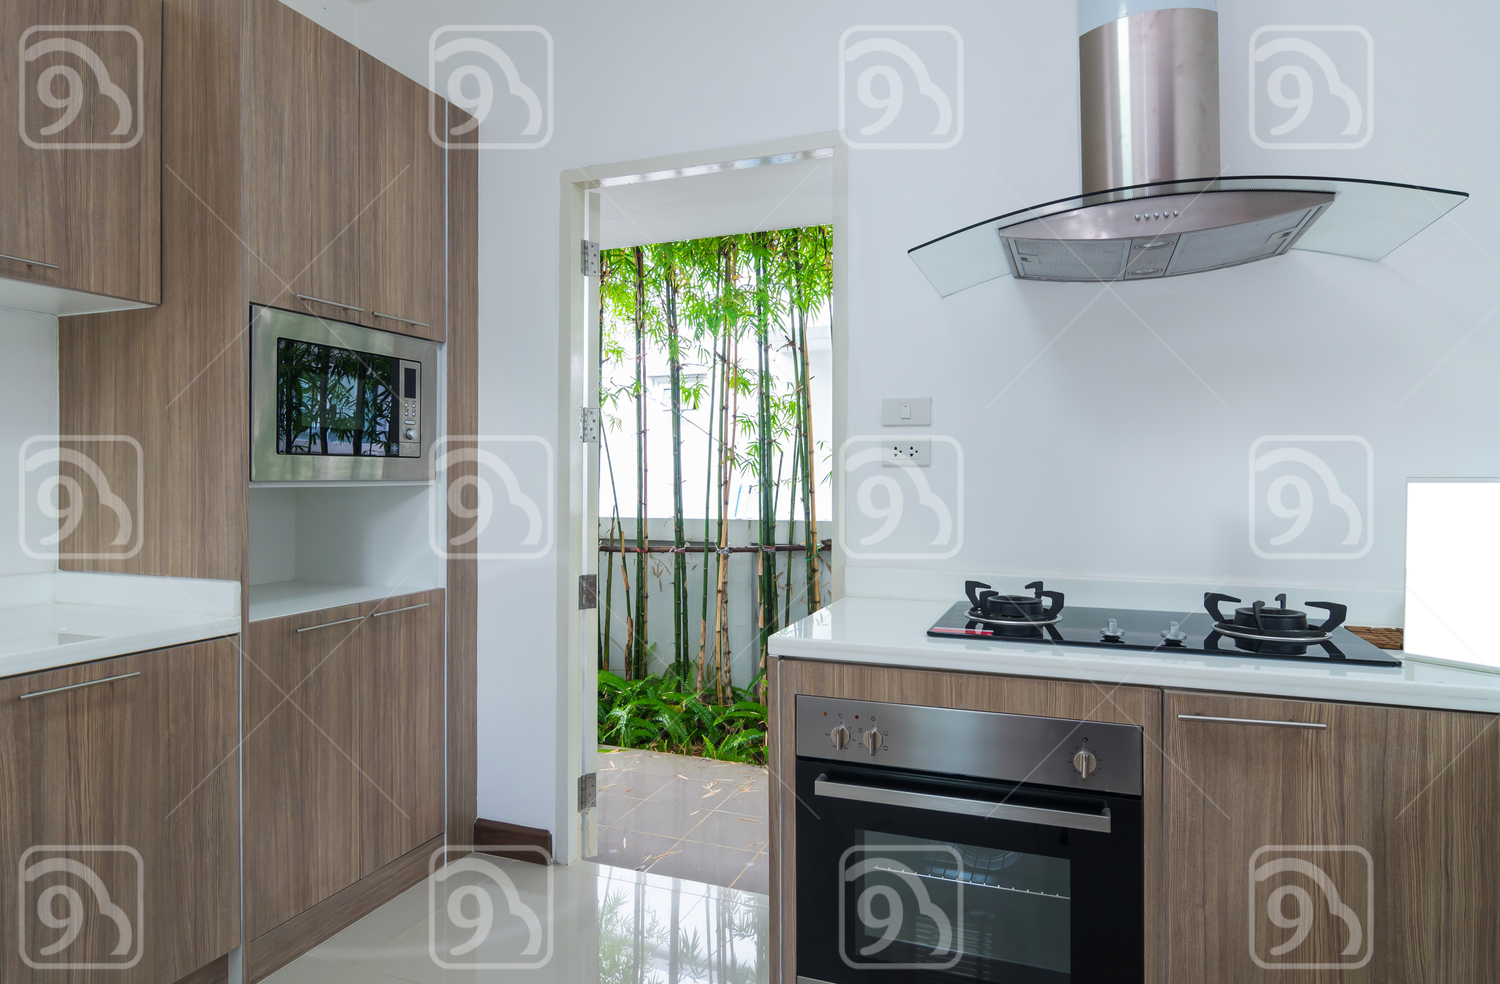 Kitchen interior with electric stove